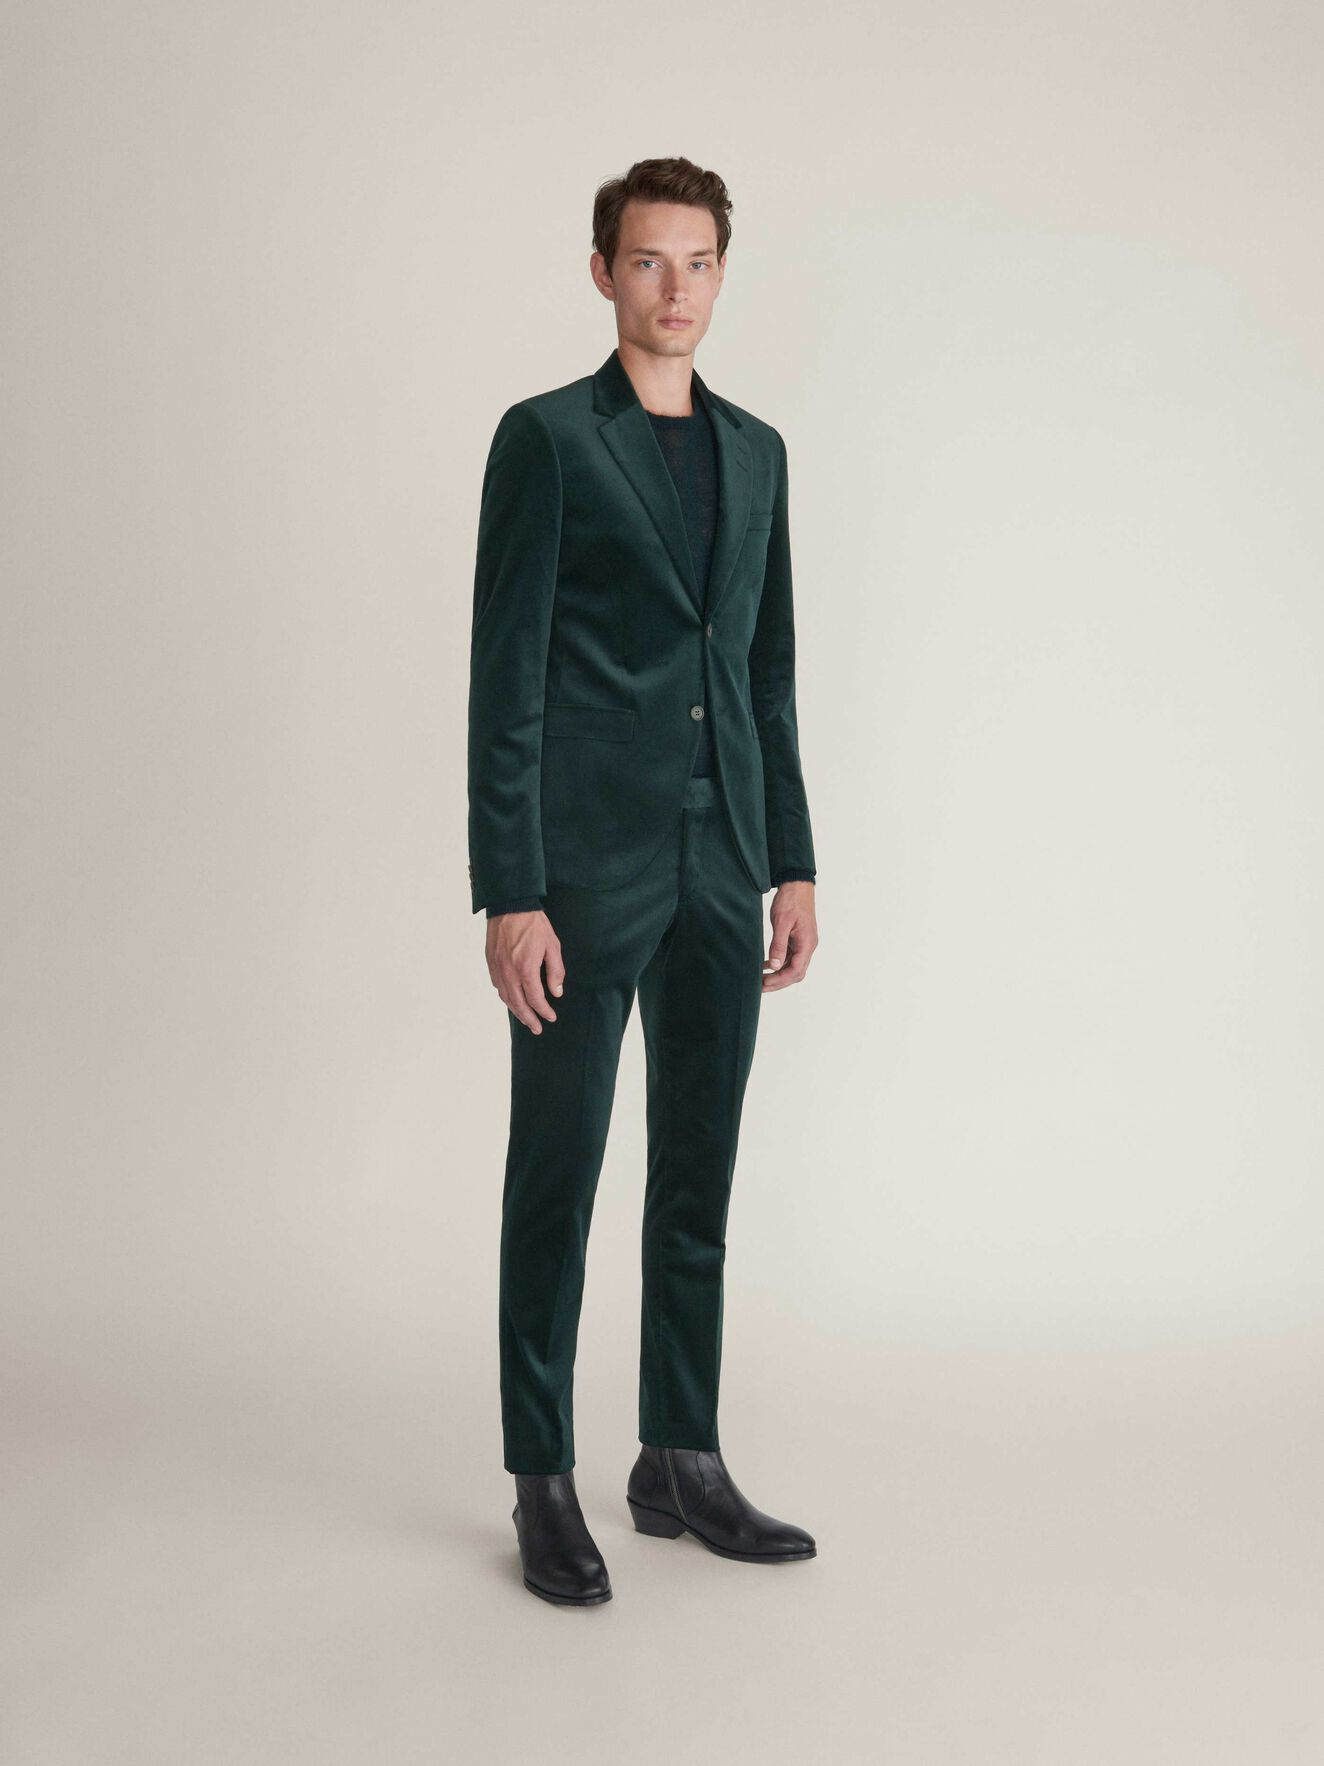 Tordon Trousers in Scarab Green from Tiger of Sweden